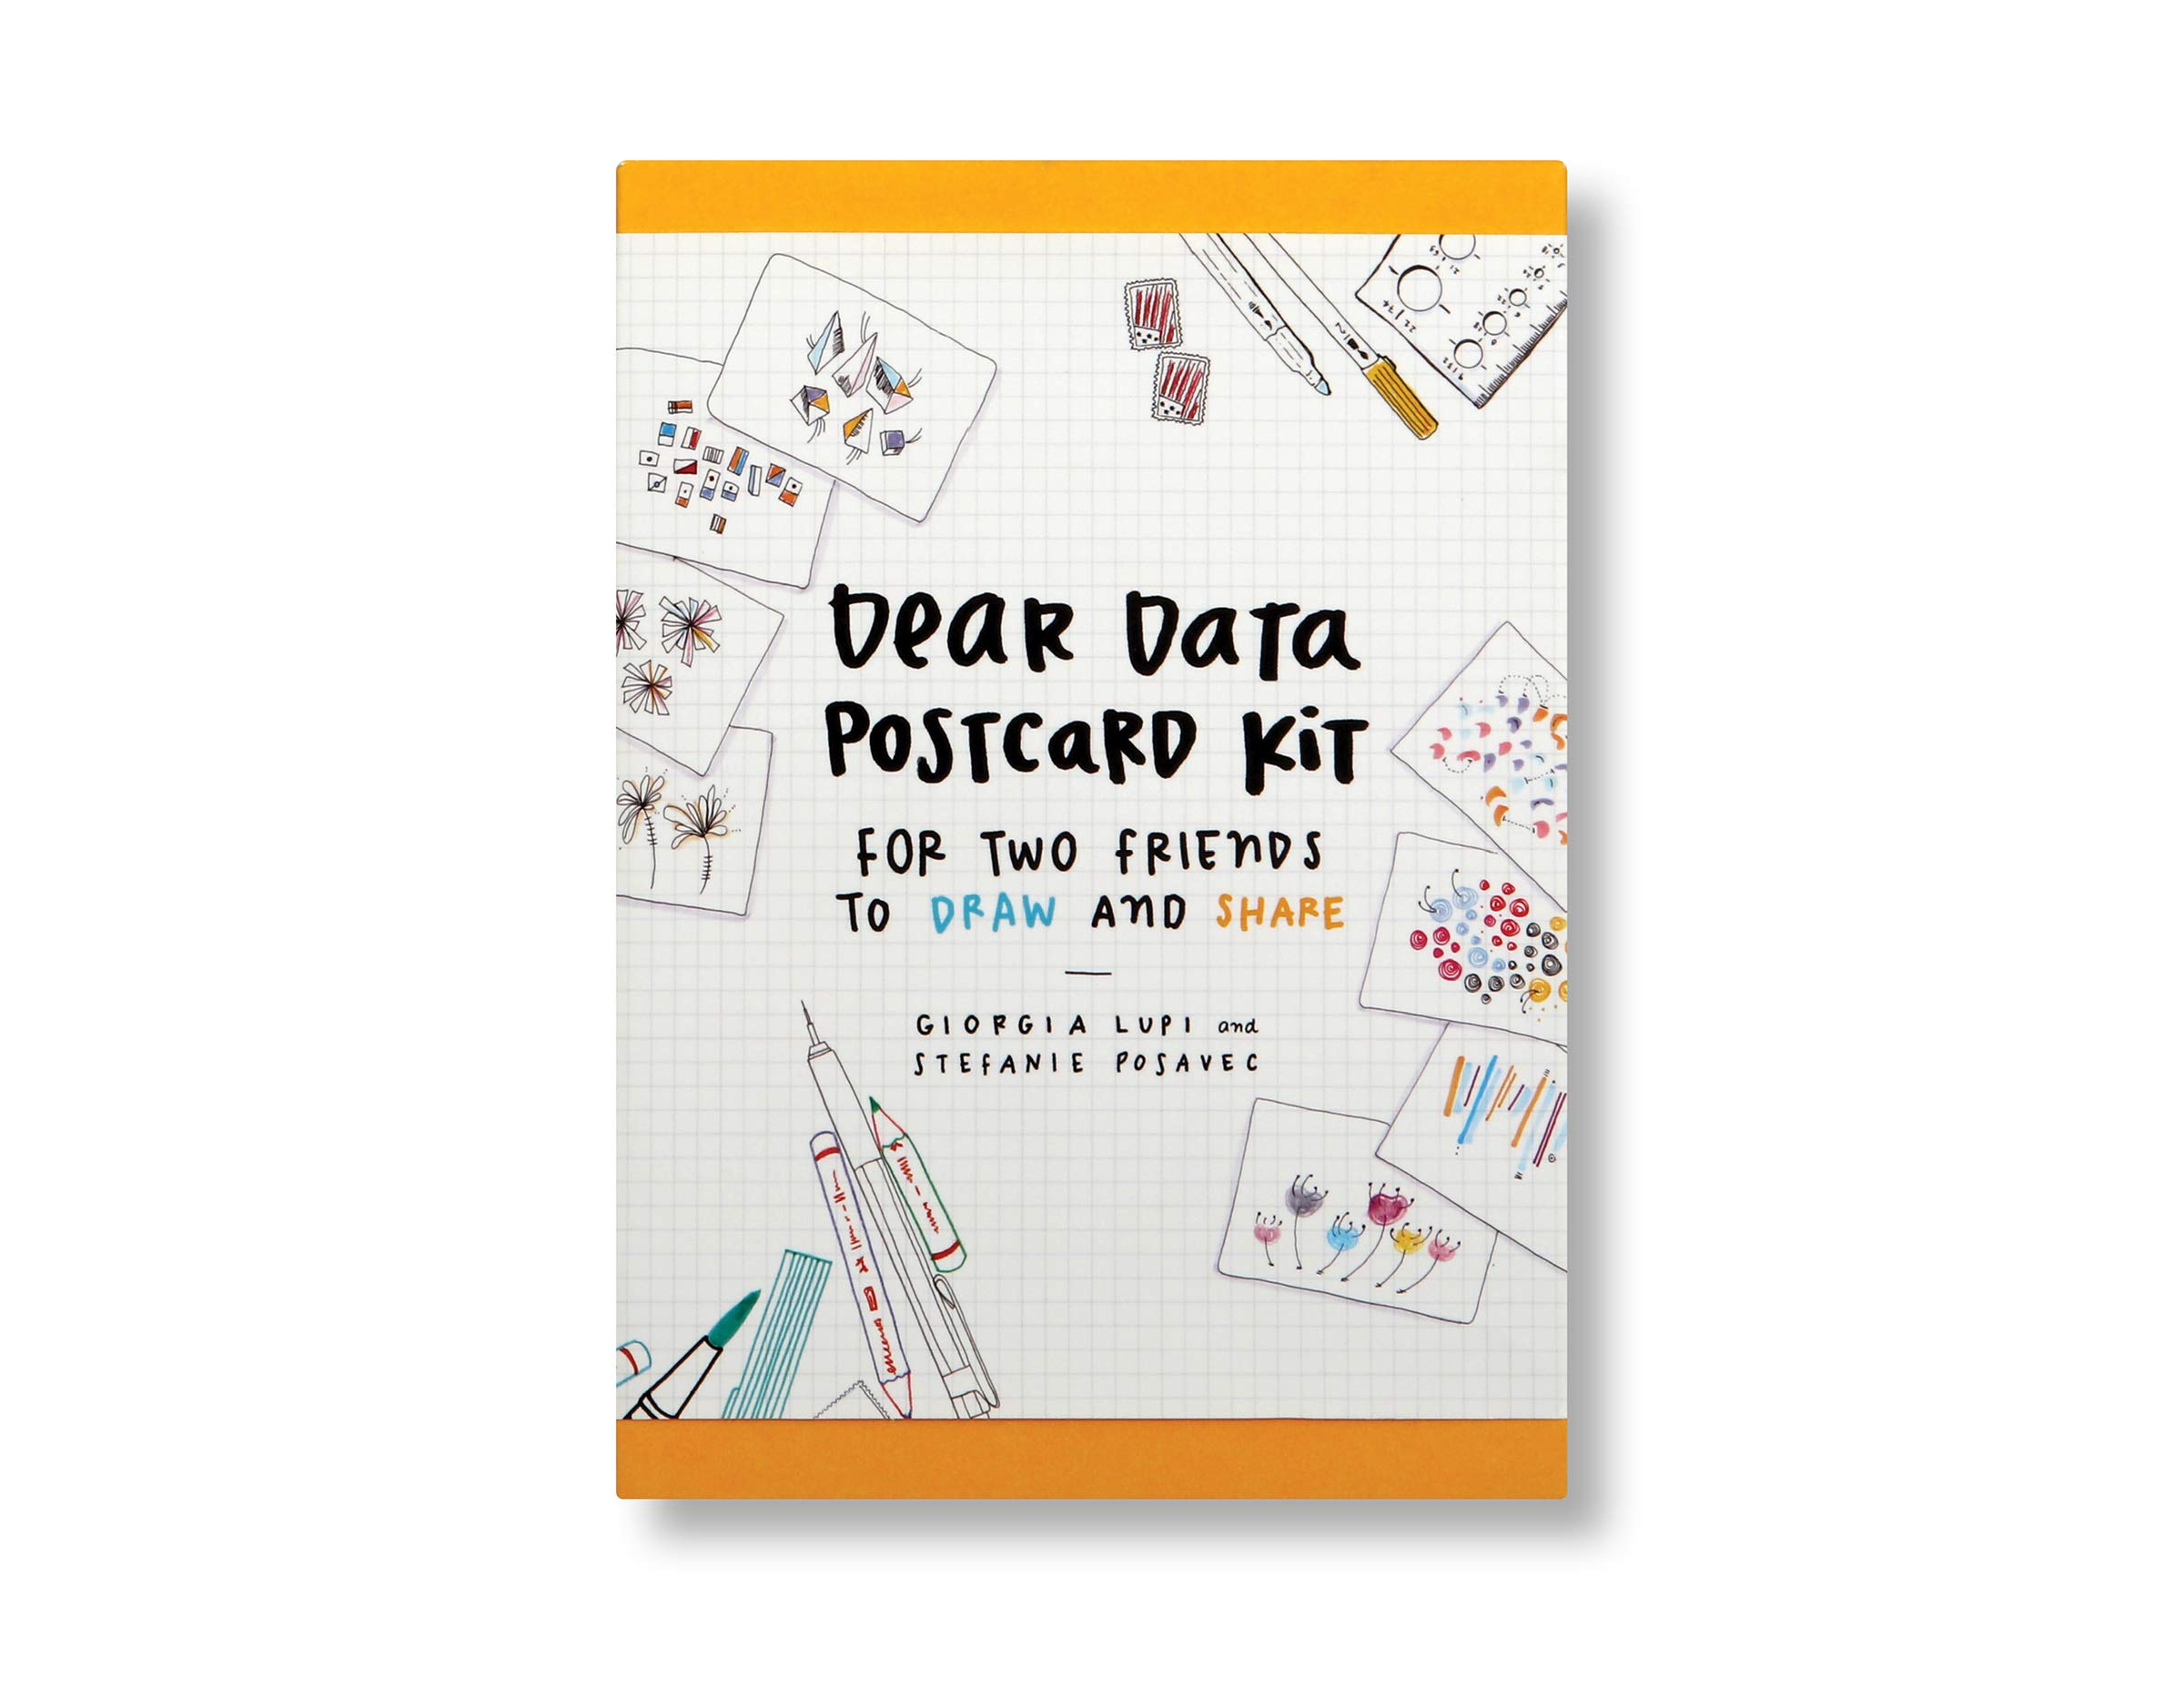 Image OfDear Data Postcard Kit: For Two Friends To Draw And Share